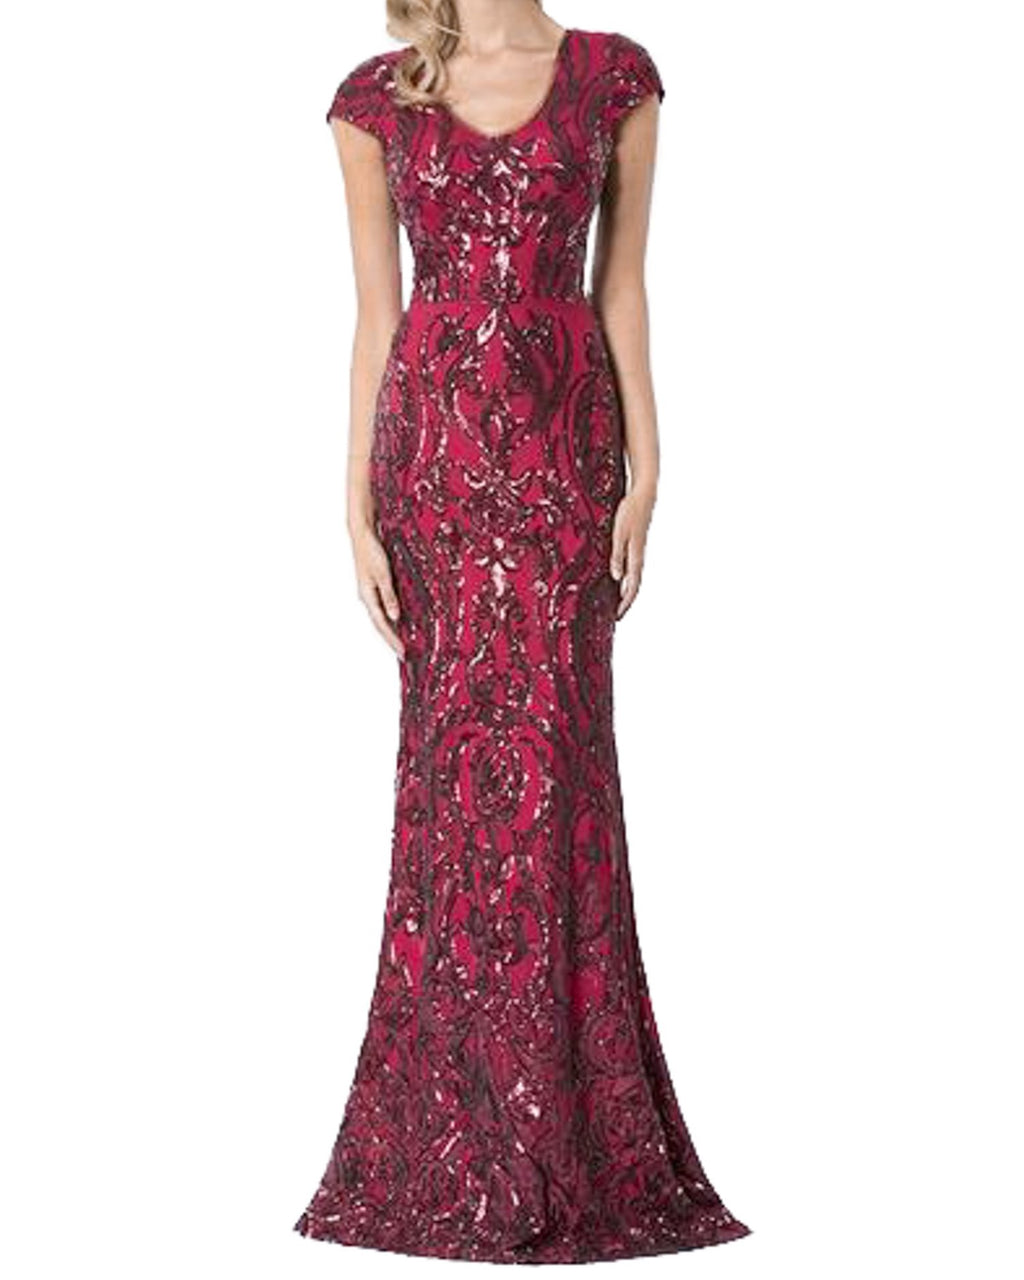 Patterned Cap Sleeve Sequin Gown